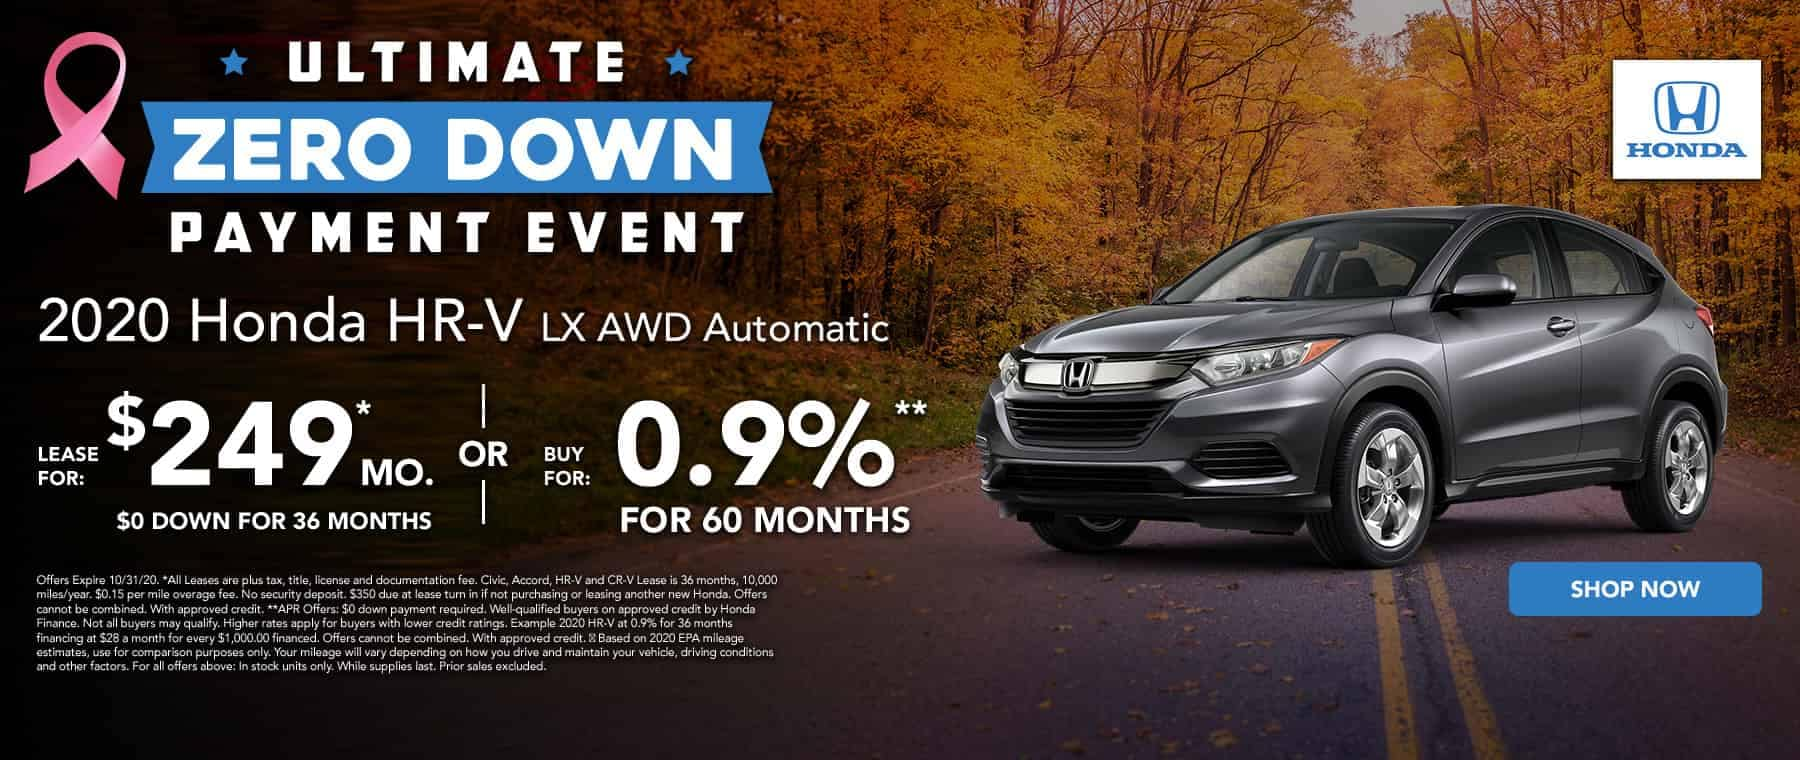 Lease a new HR-V for $249 per month